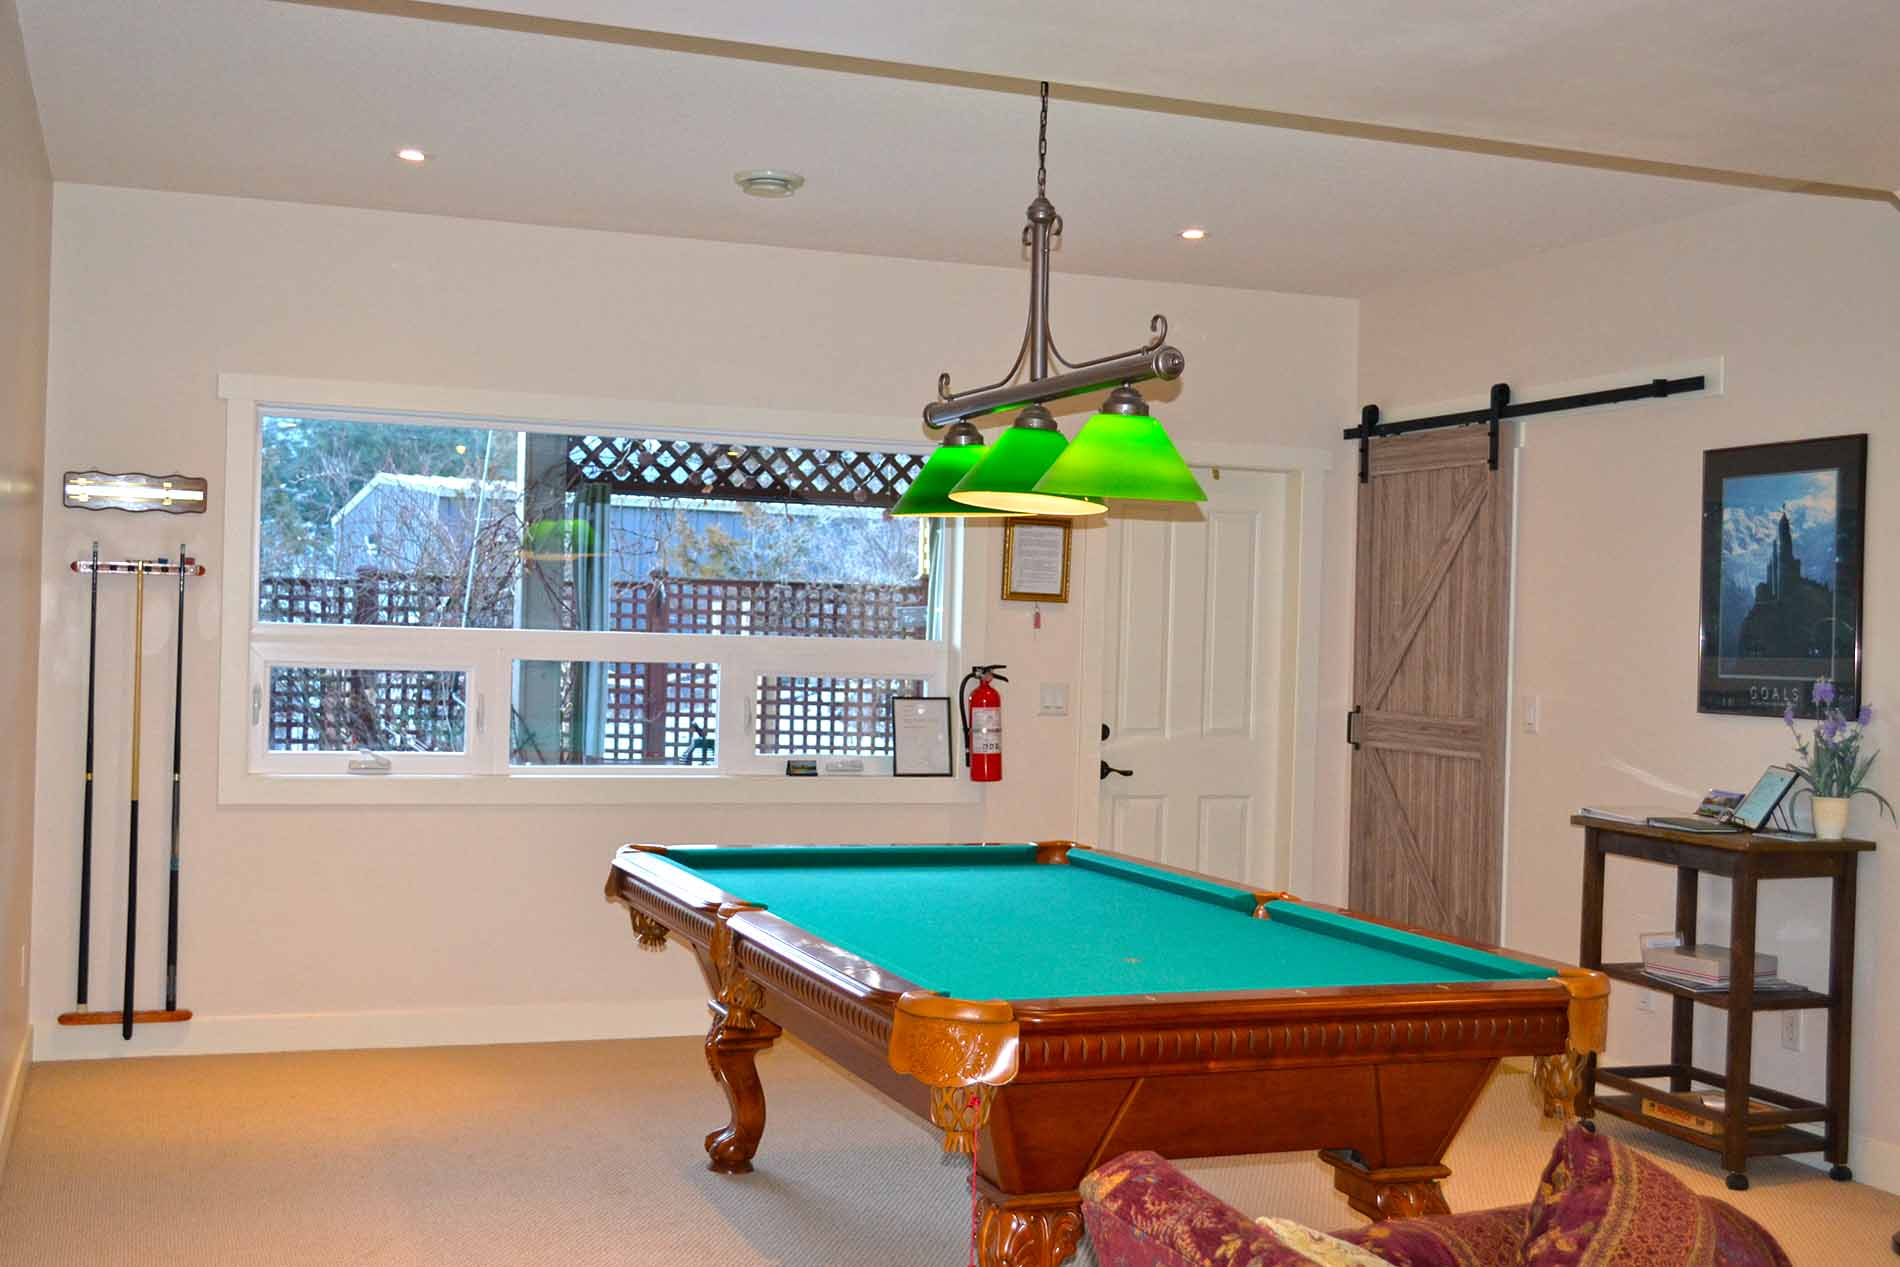 Recreation Room2 Family Accommodations Peachland Bb With Pool